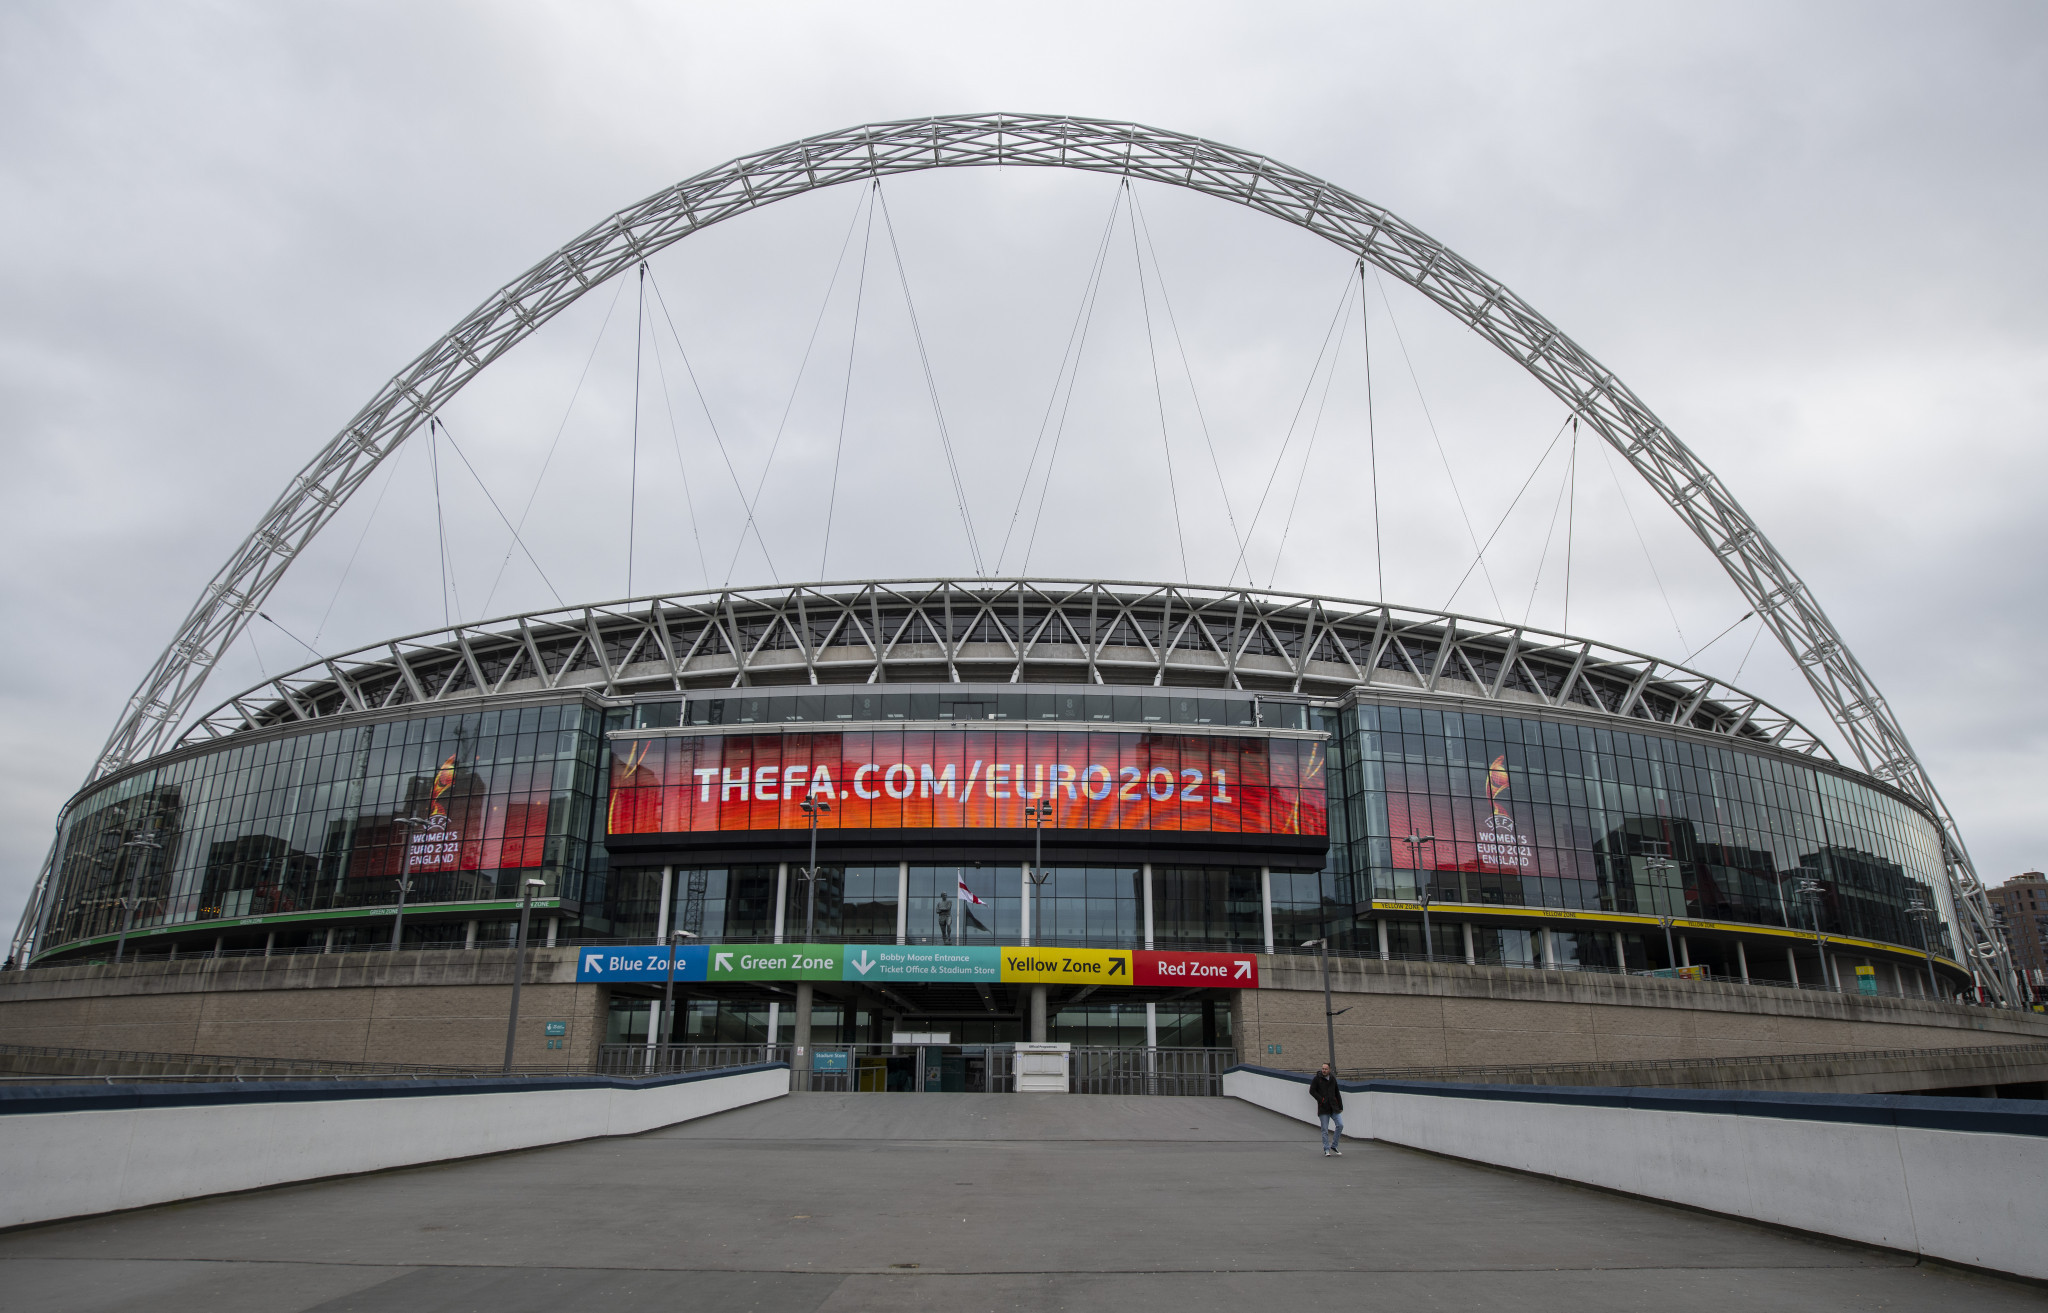 Plan for return of fans in England raises hope for Euro 2020 and Wimbledon